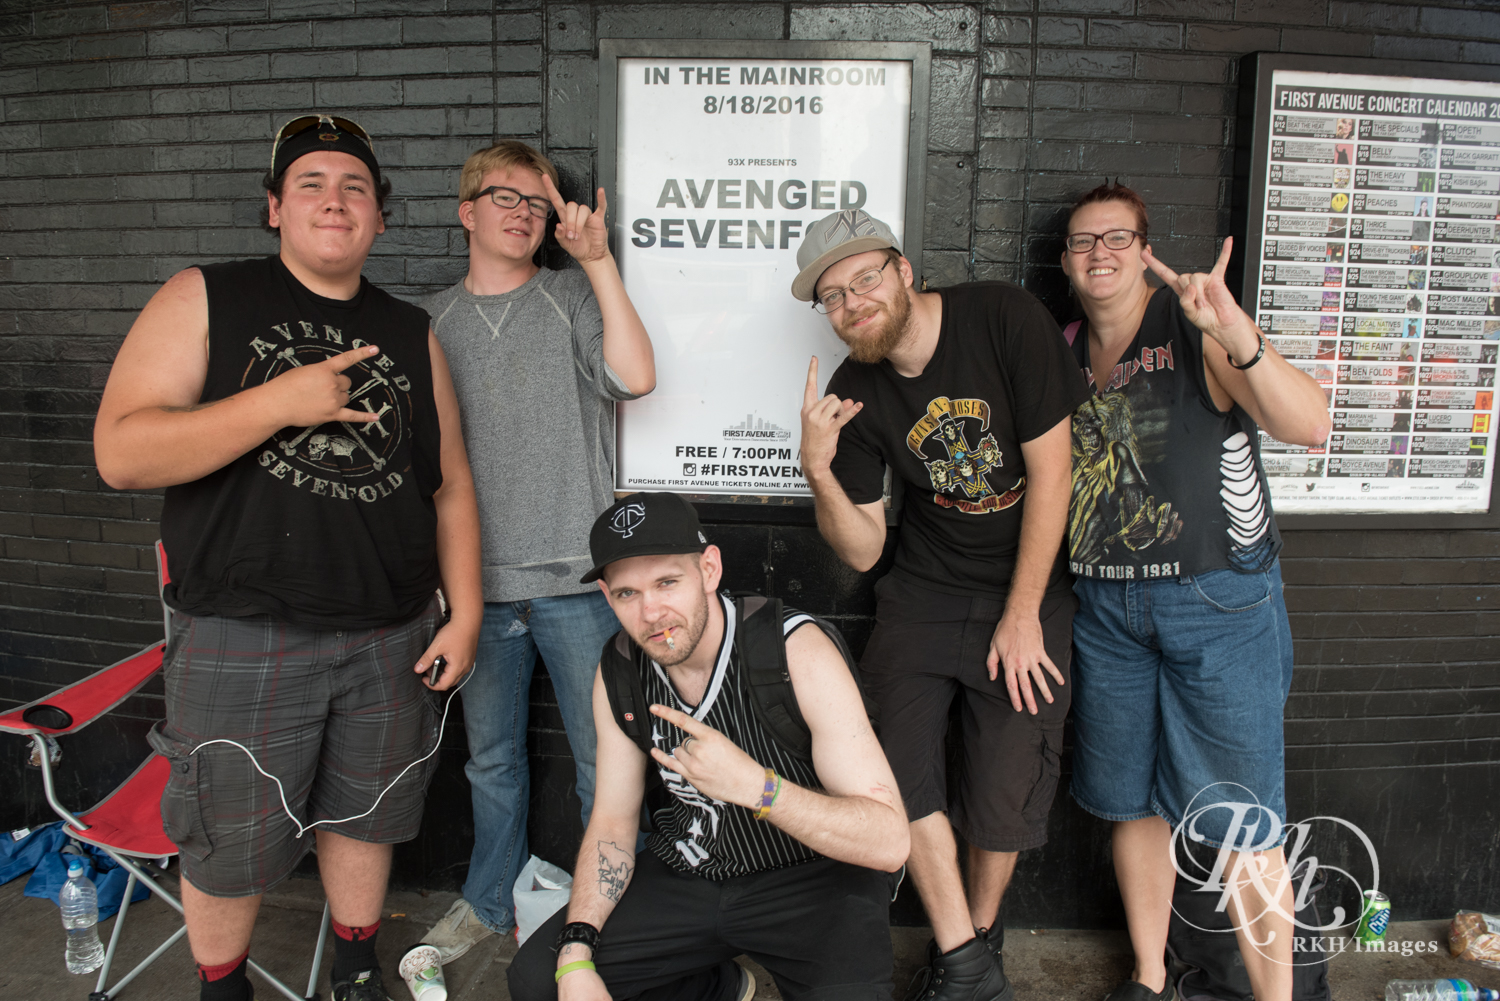 a7x rkh images (2 of 52).jpg